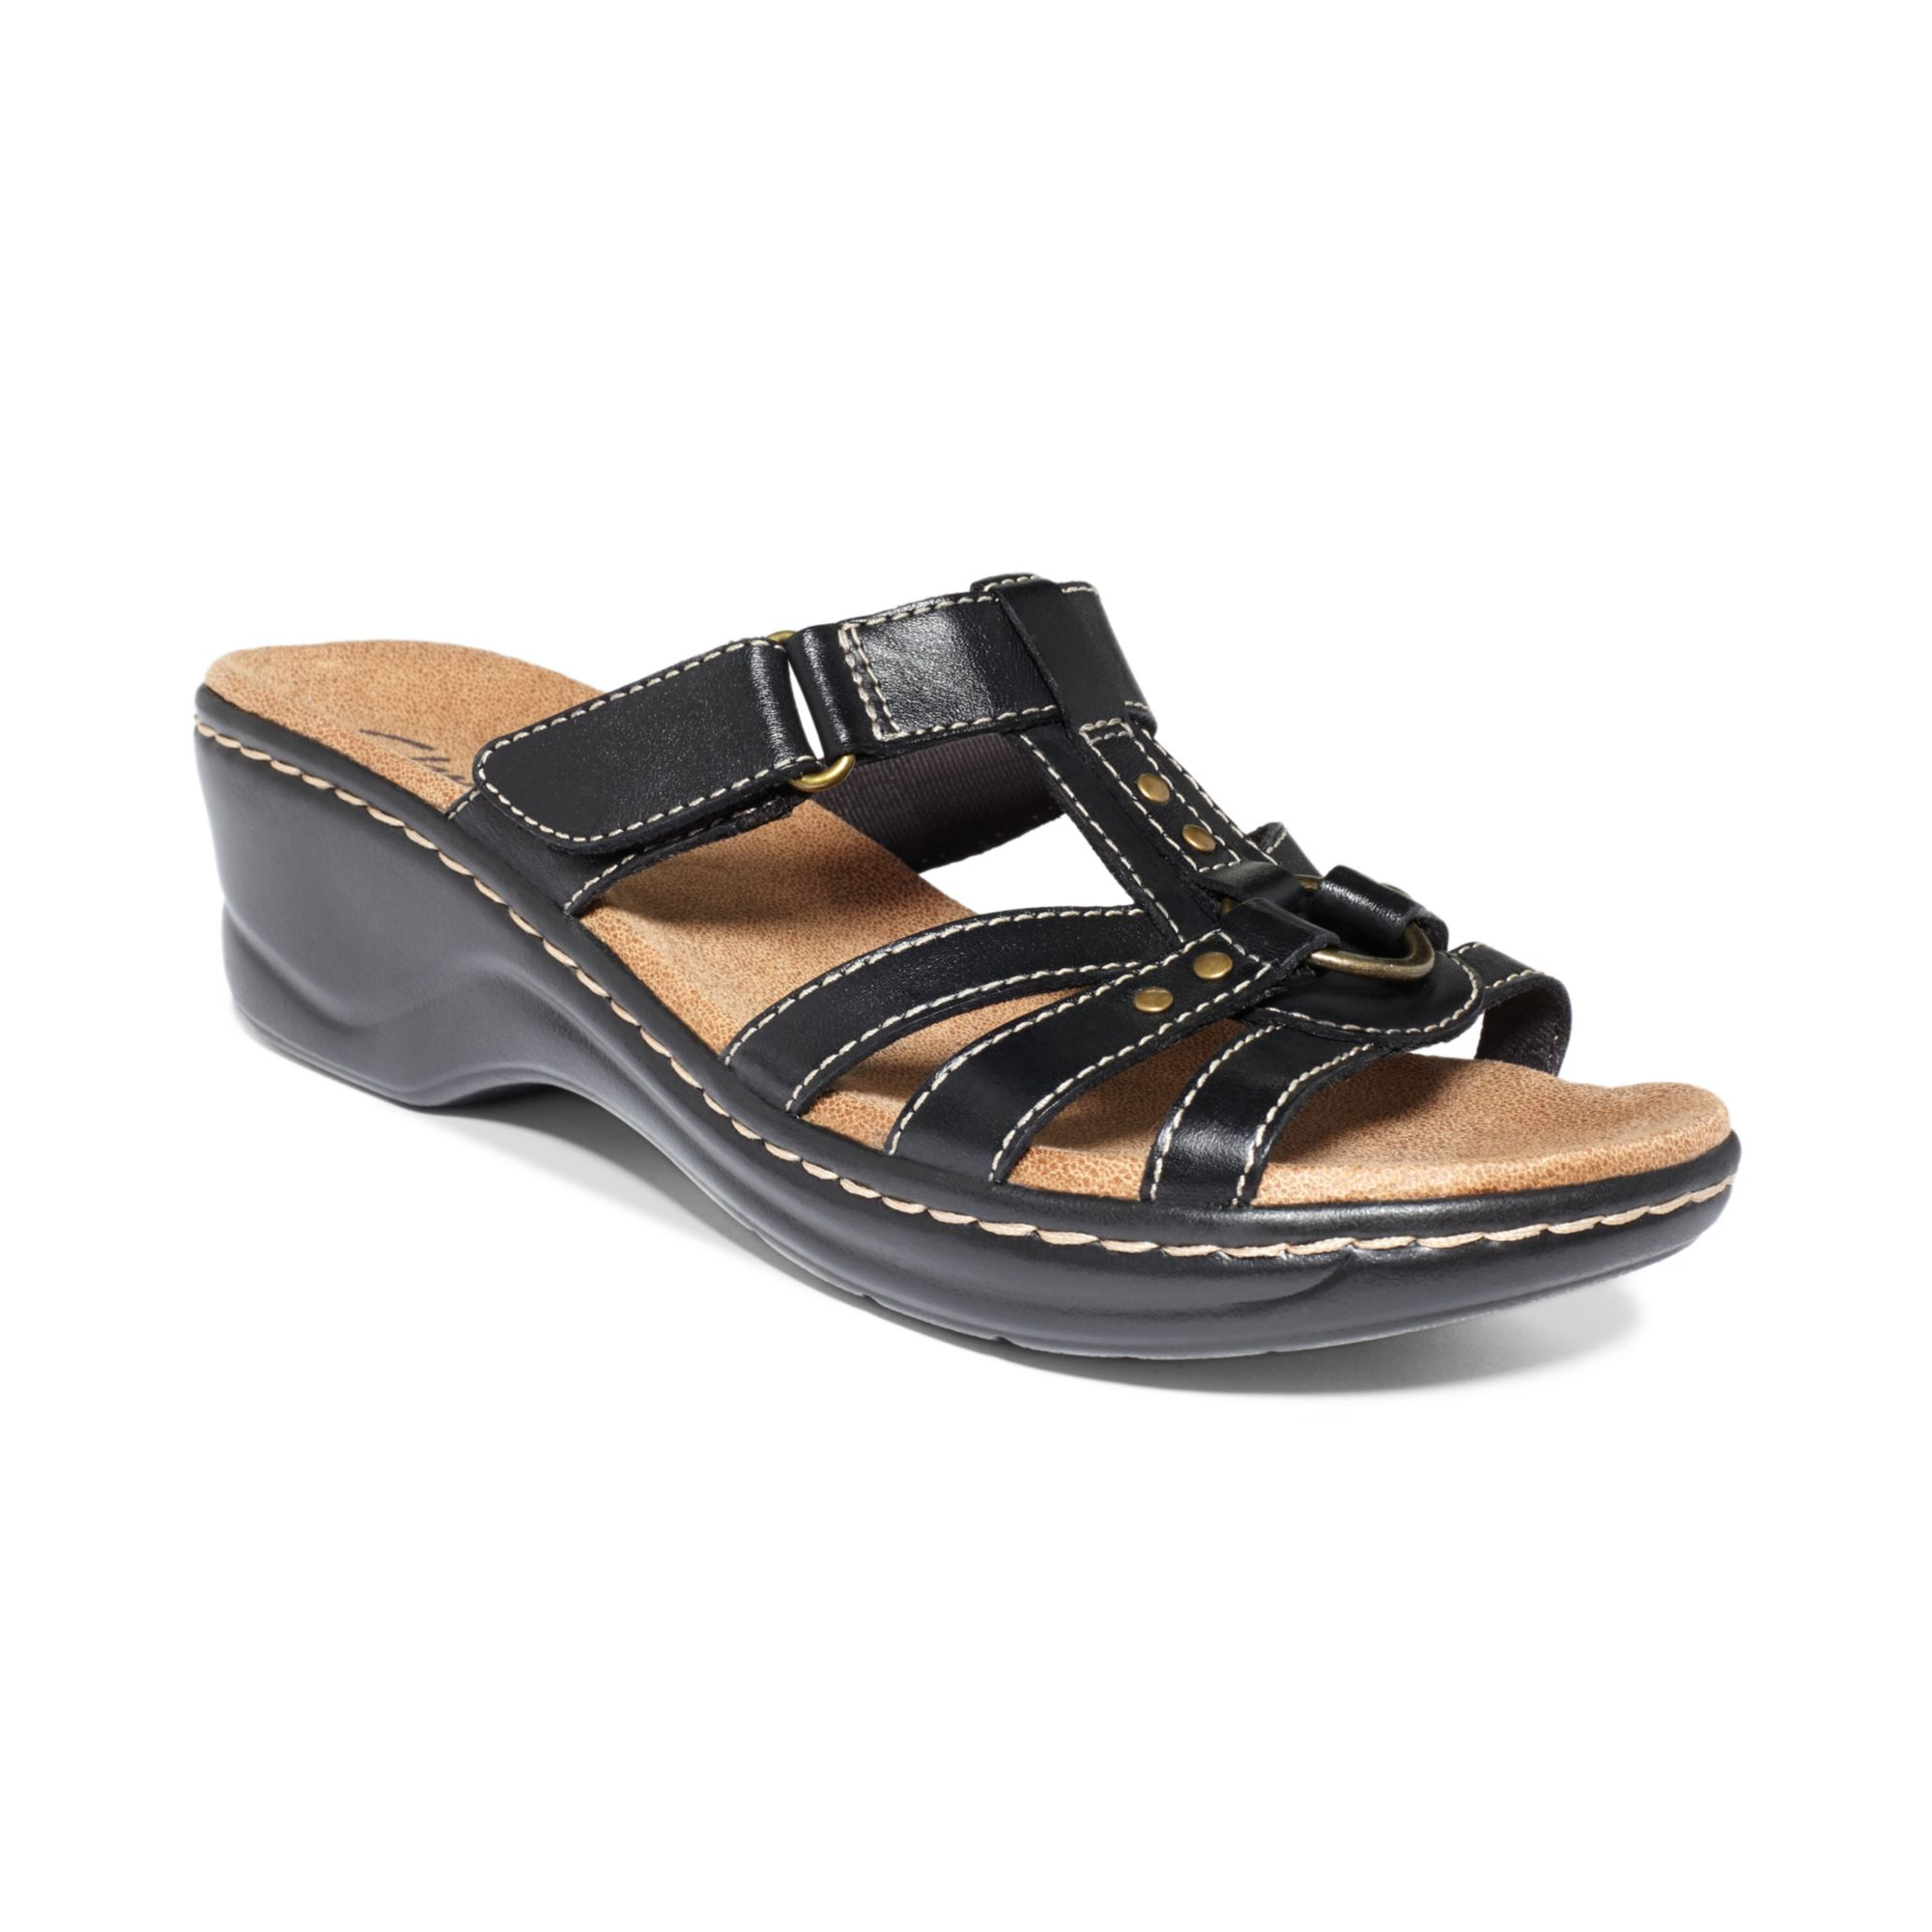 Excellent Blue Sandals Payless Shoes For Women Sandals